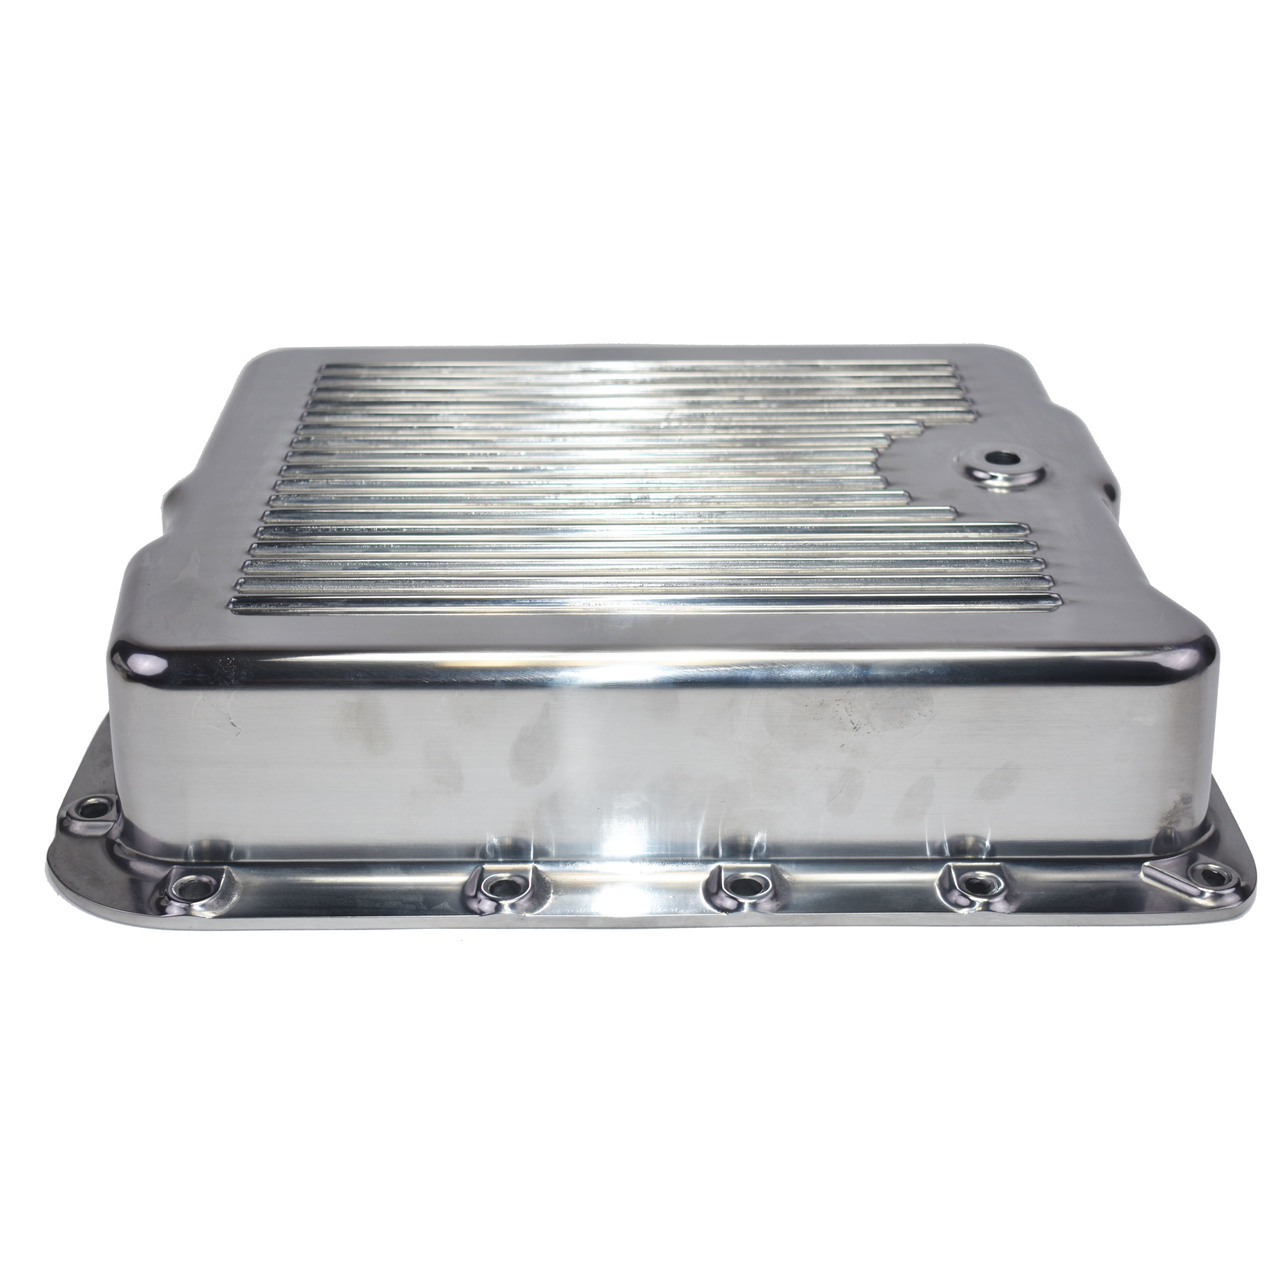 A-Team Performance GM 700R4/4L60/4L65E/4L70E TRANSMISSION PAN WITH GASKET & BOLTS